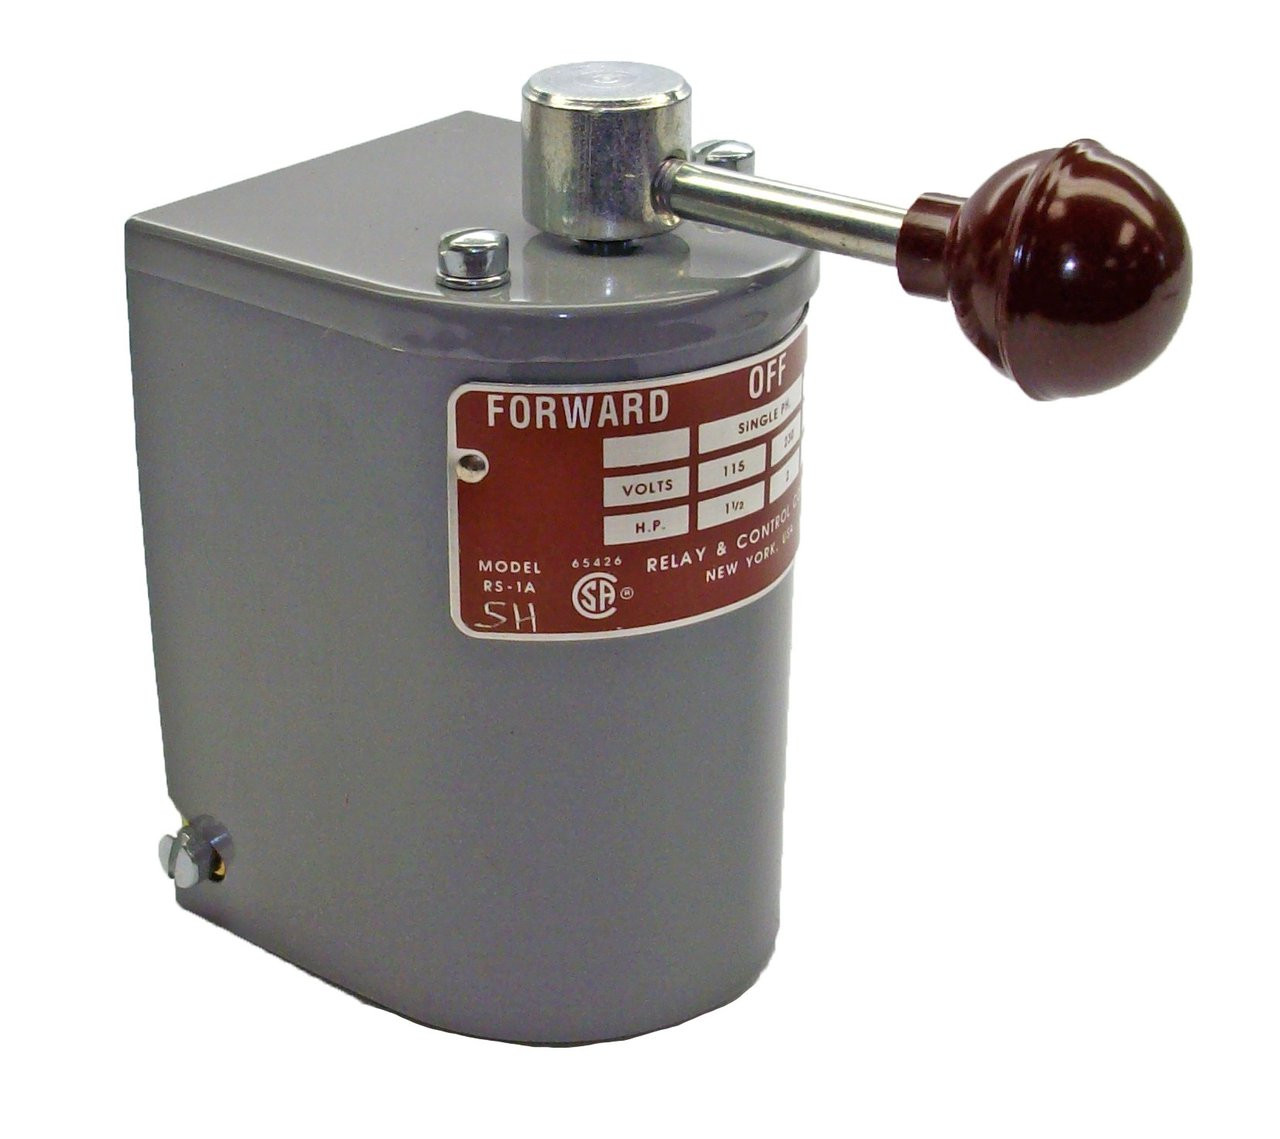 1.5 hp Spring Returned # RS-1A-MP Single Phase Only 2 hp Electric Motor Reversing Drum Switch